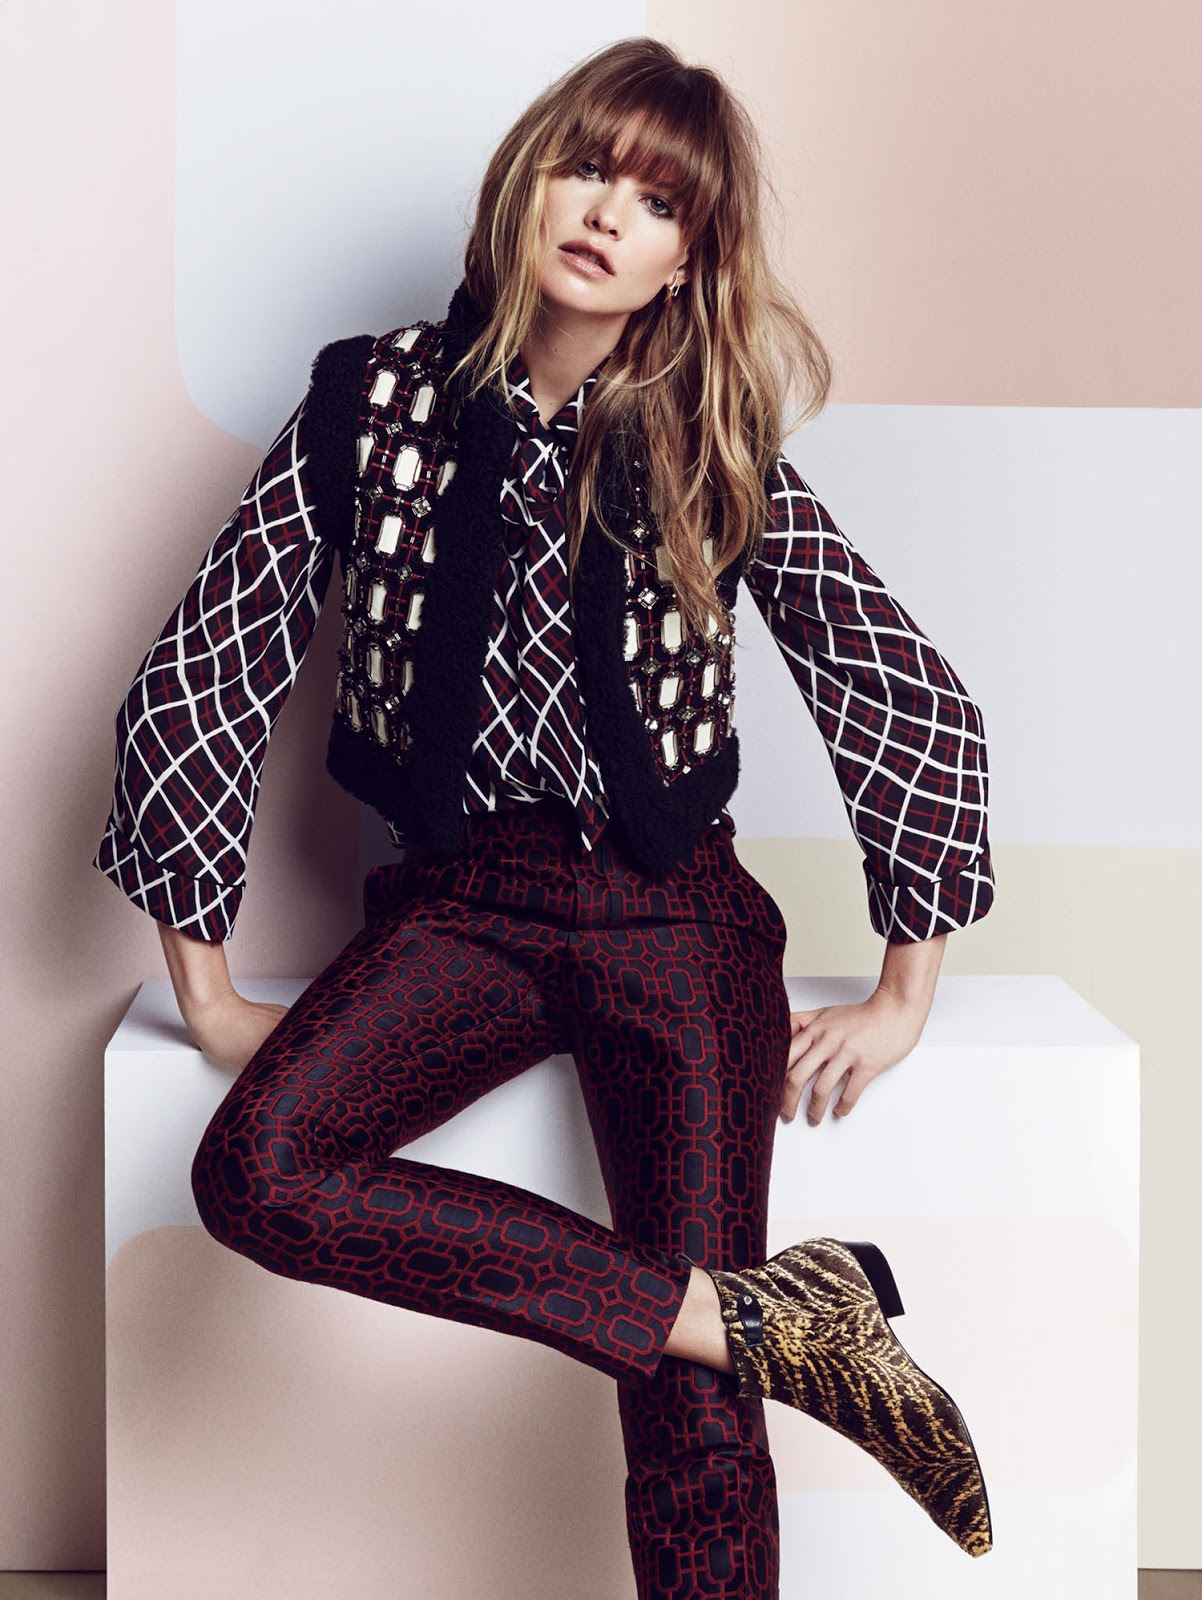 Behati Prinsloo Fronts Free People S June E Catalog: Duchess Dior: Behati Prinsloo By Patrick Demarchelier For